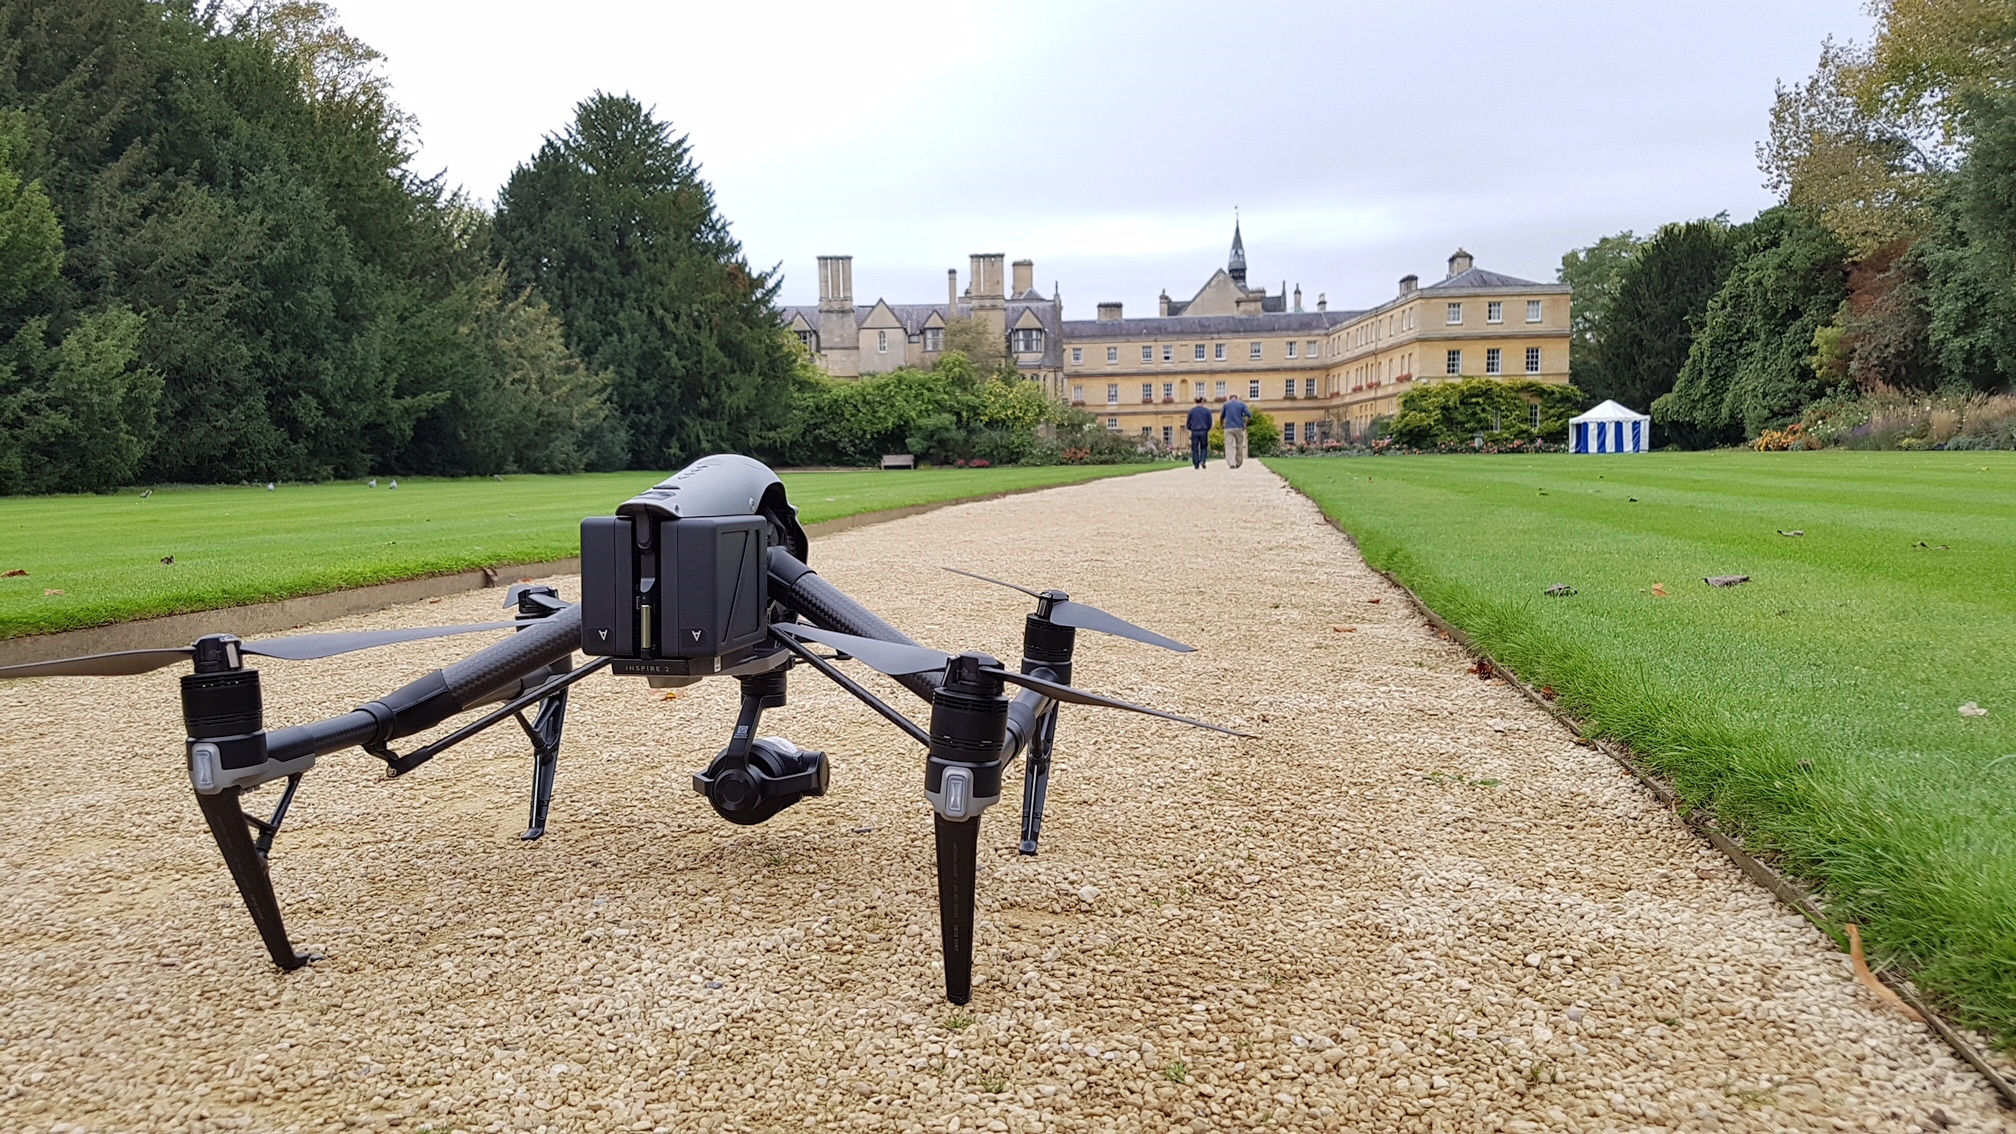 How much does it cost to set up a drone business?